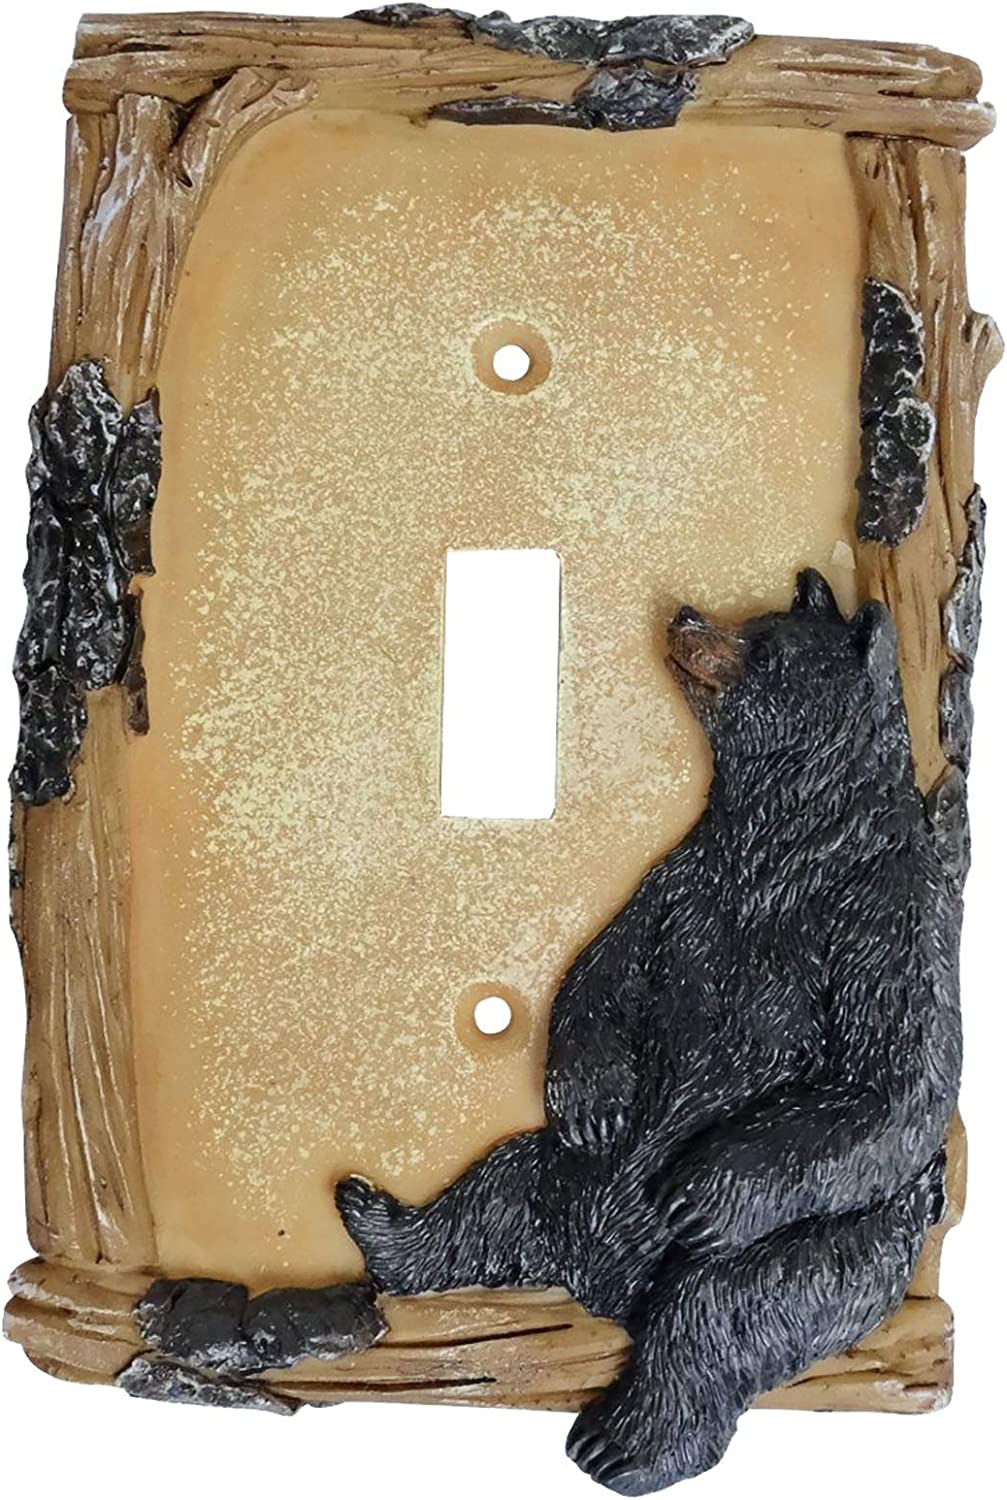 Black Bear on Log Single Switch Cover Cabin Lodge Style Home Décor